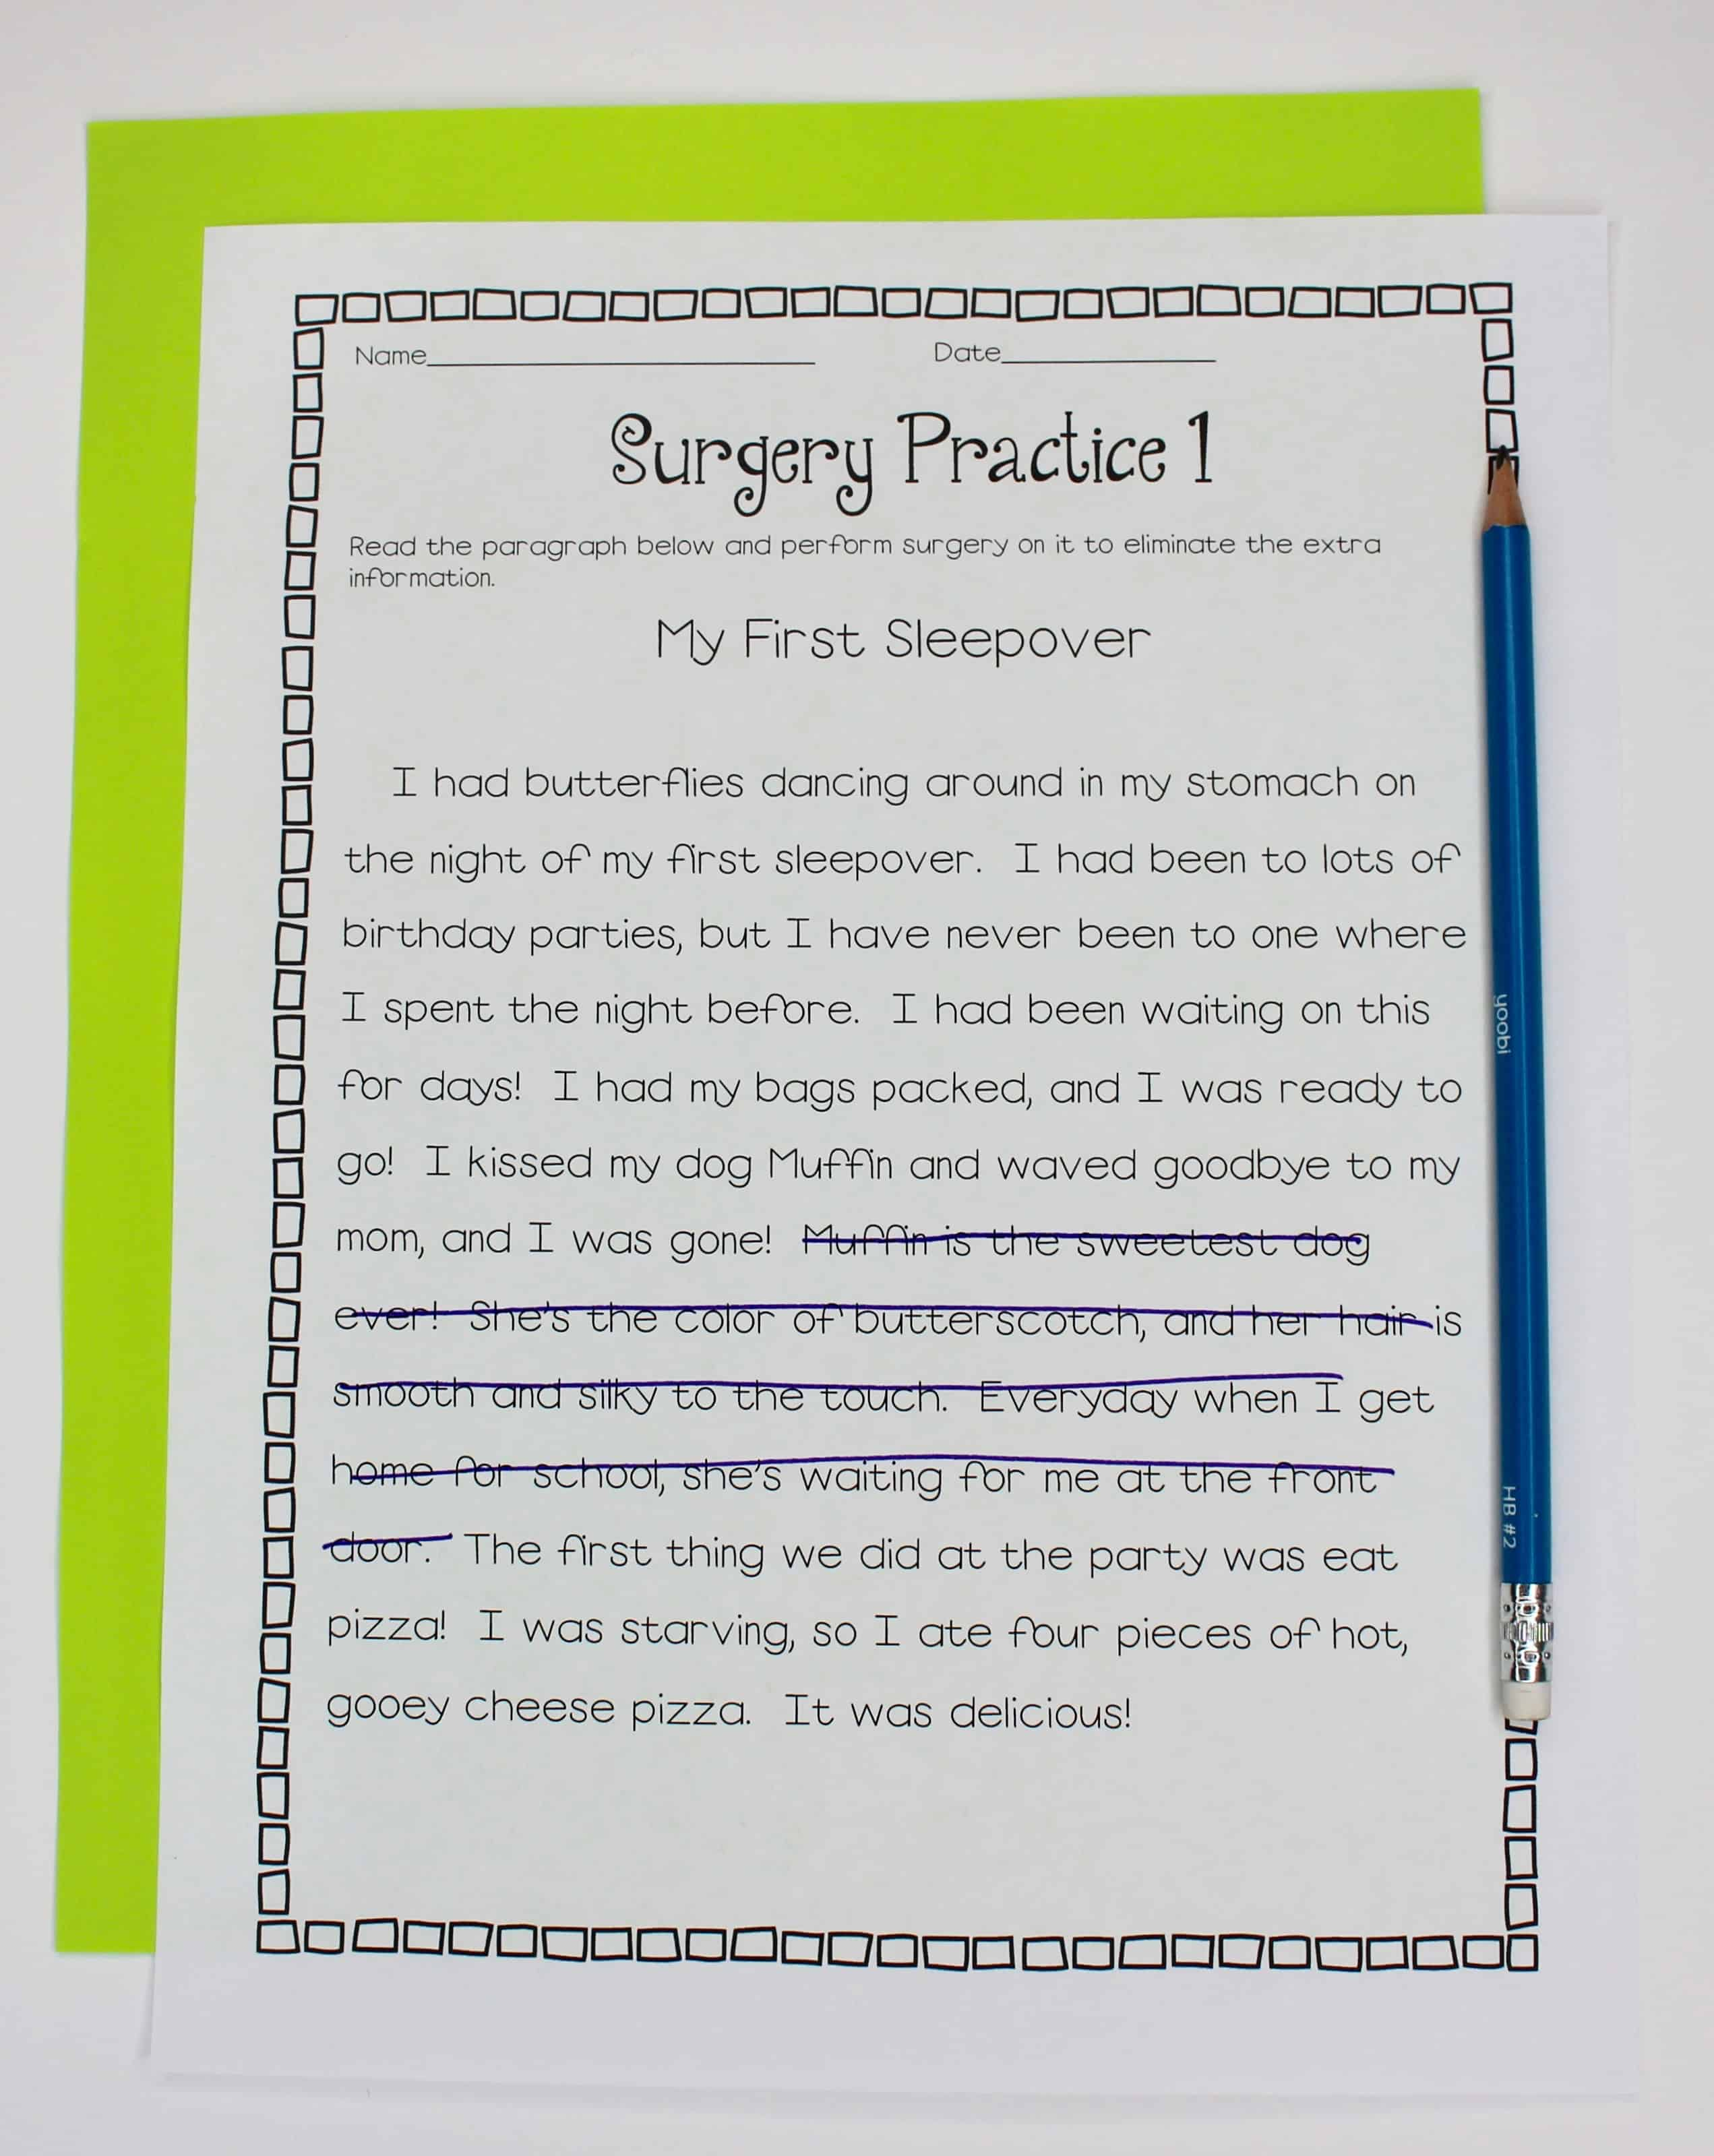 Teaching narrative writing to upper elementary students can be SO much fun! But, as we know, there are a lot of pieces to narrative writing, and it's a lot to teach. This blog post shares tons of tips, mentor texts, activities, and resources for teaching narratives in 3rd grade, 4th grade, and 5th grade. Click through to read the post!